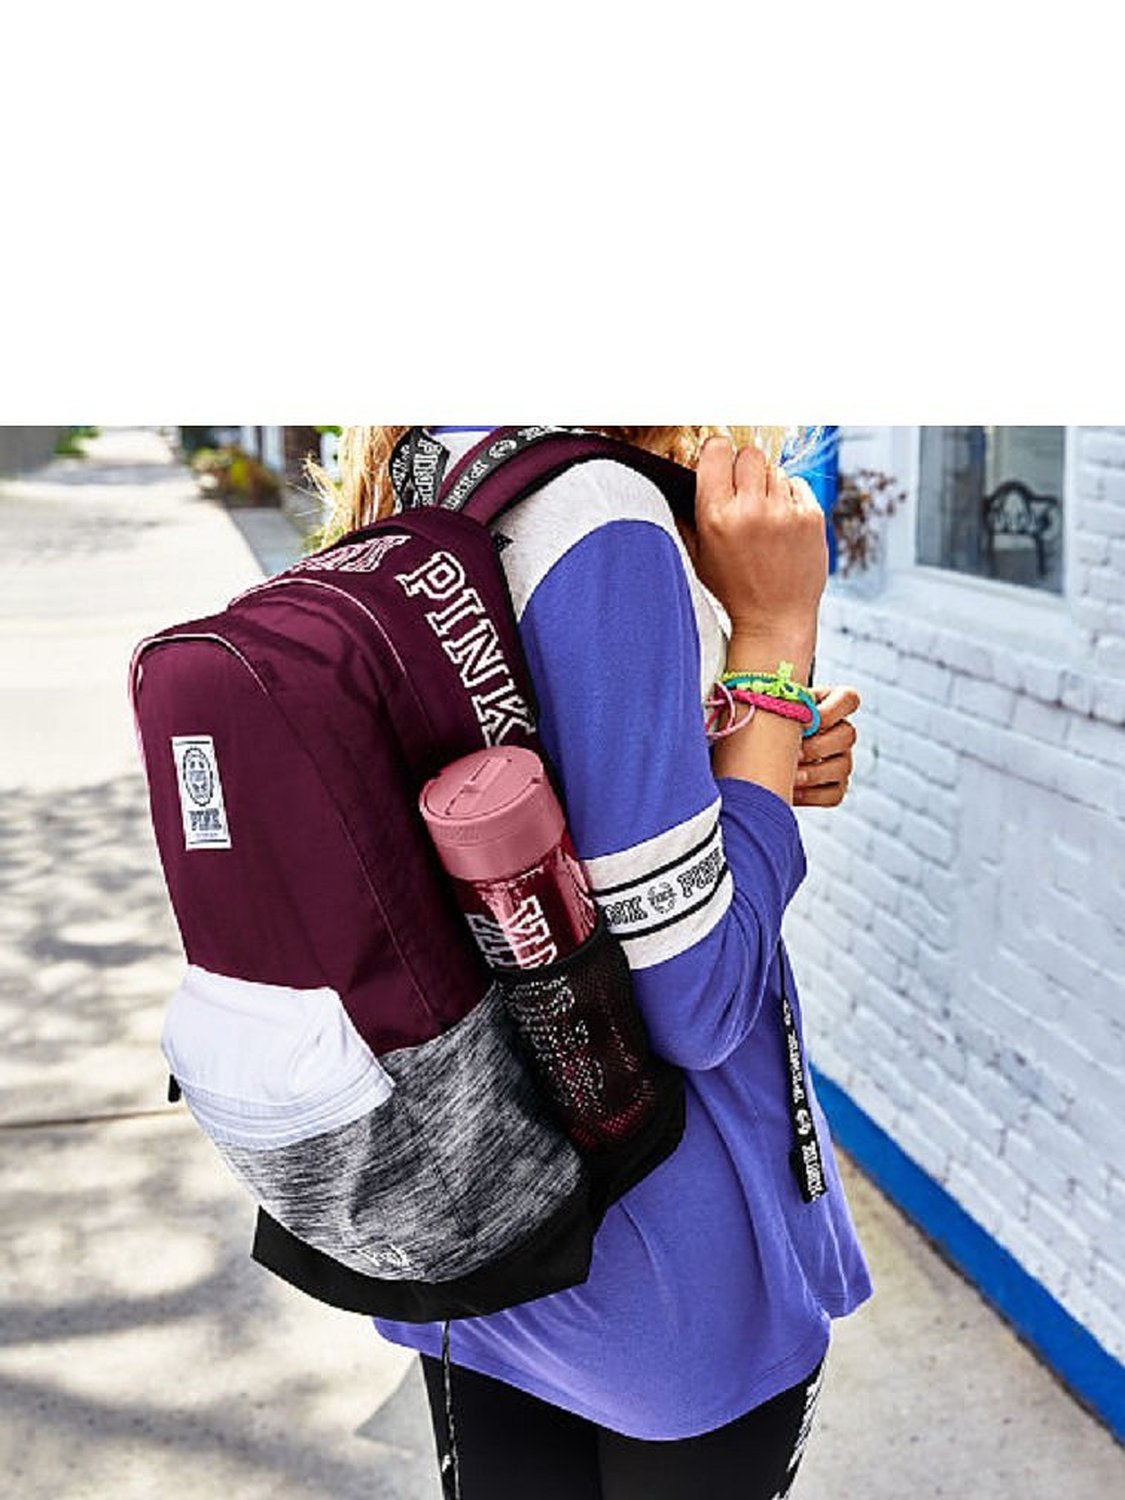 39801036f2 Victoria s Secret Pink Campus Backpack - Walmart.com